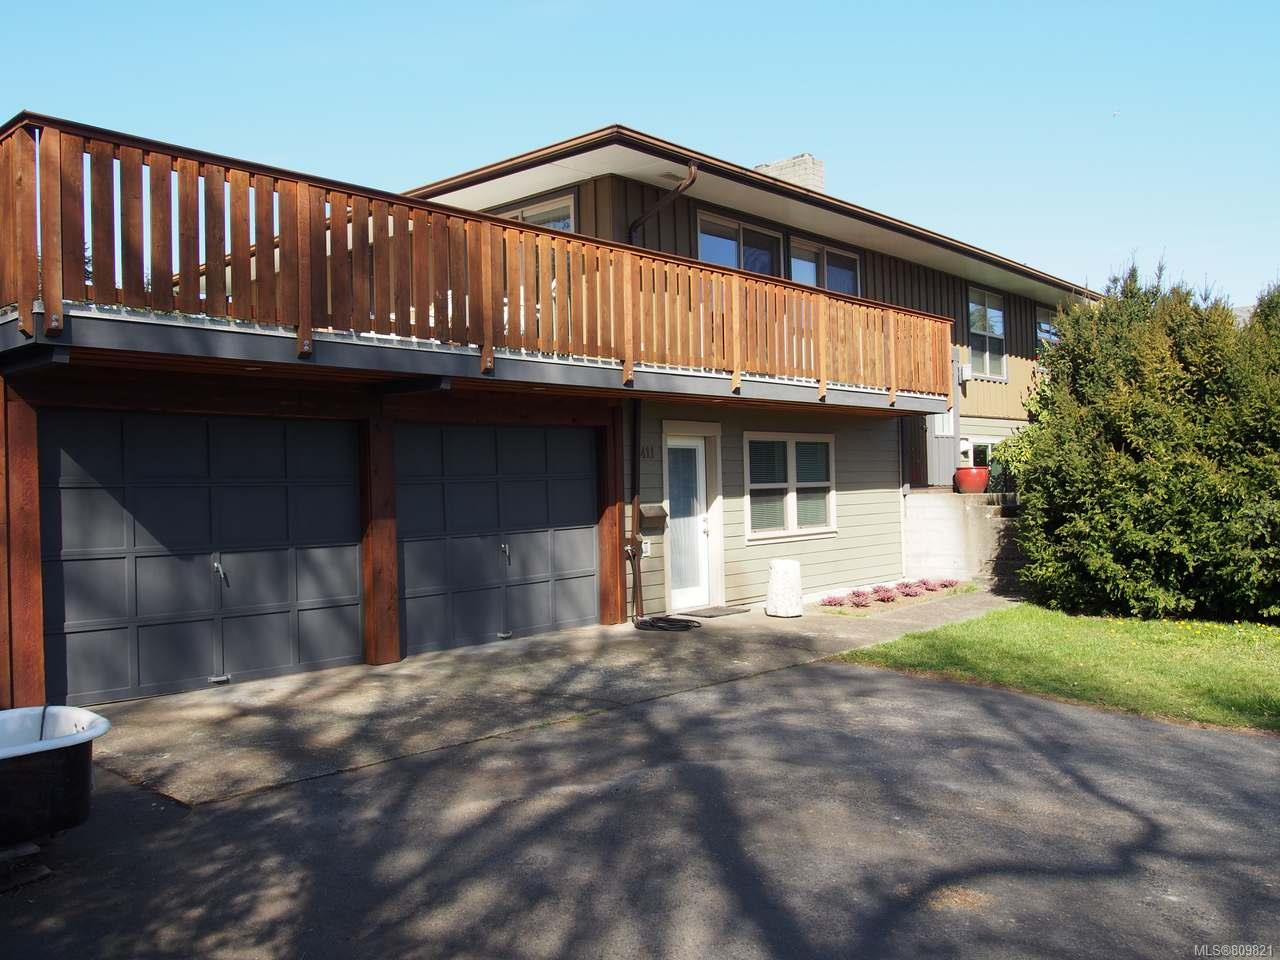 FEATURED LISTING: 2411 Glenayr Dr NANAIMO